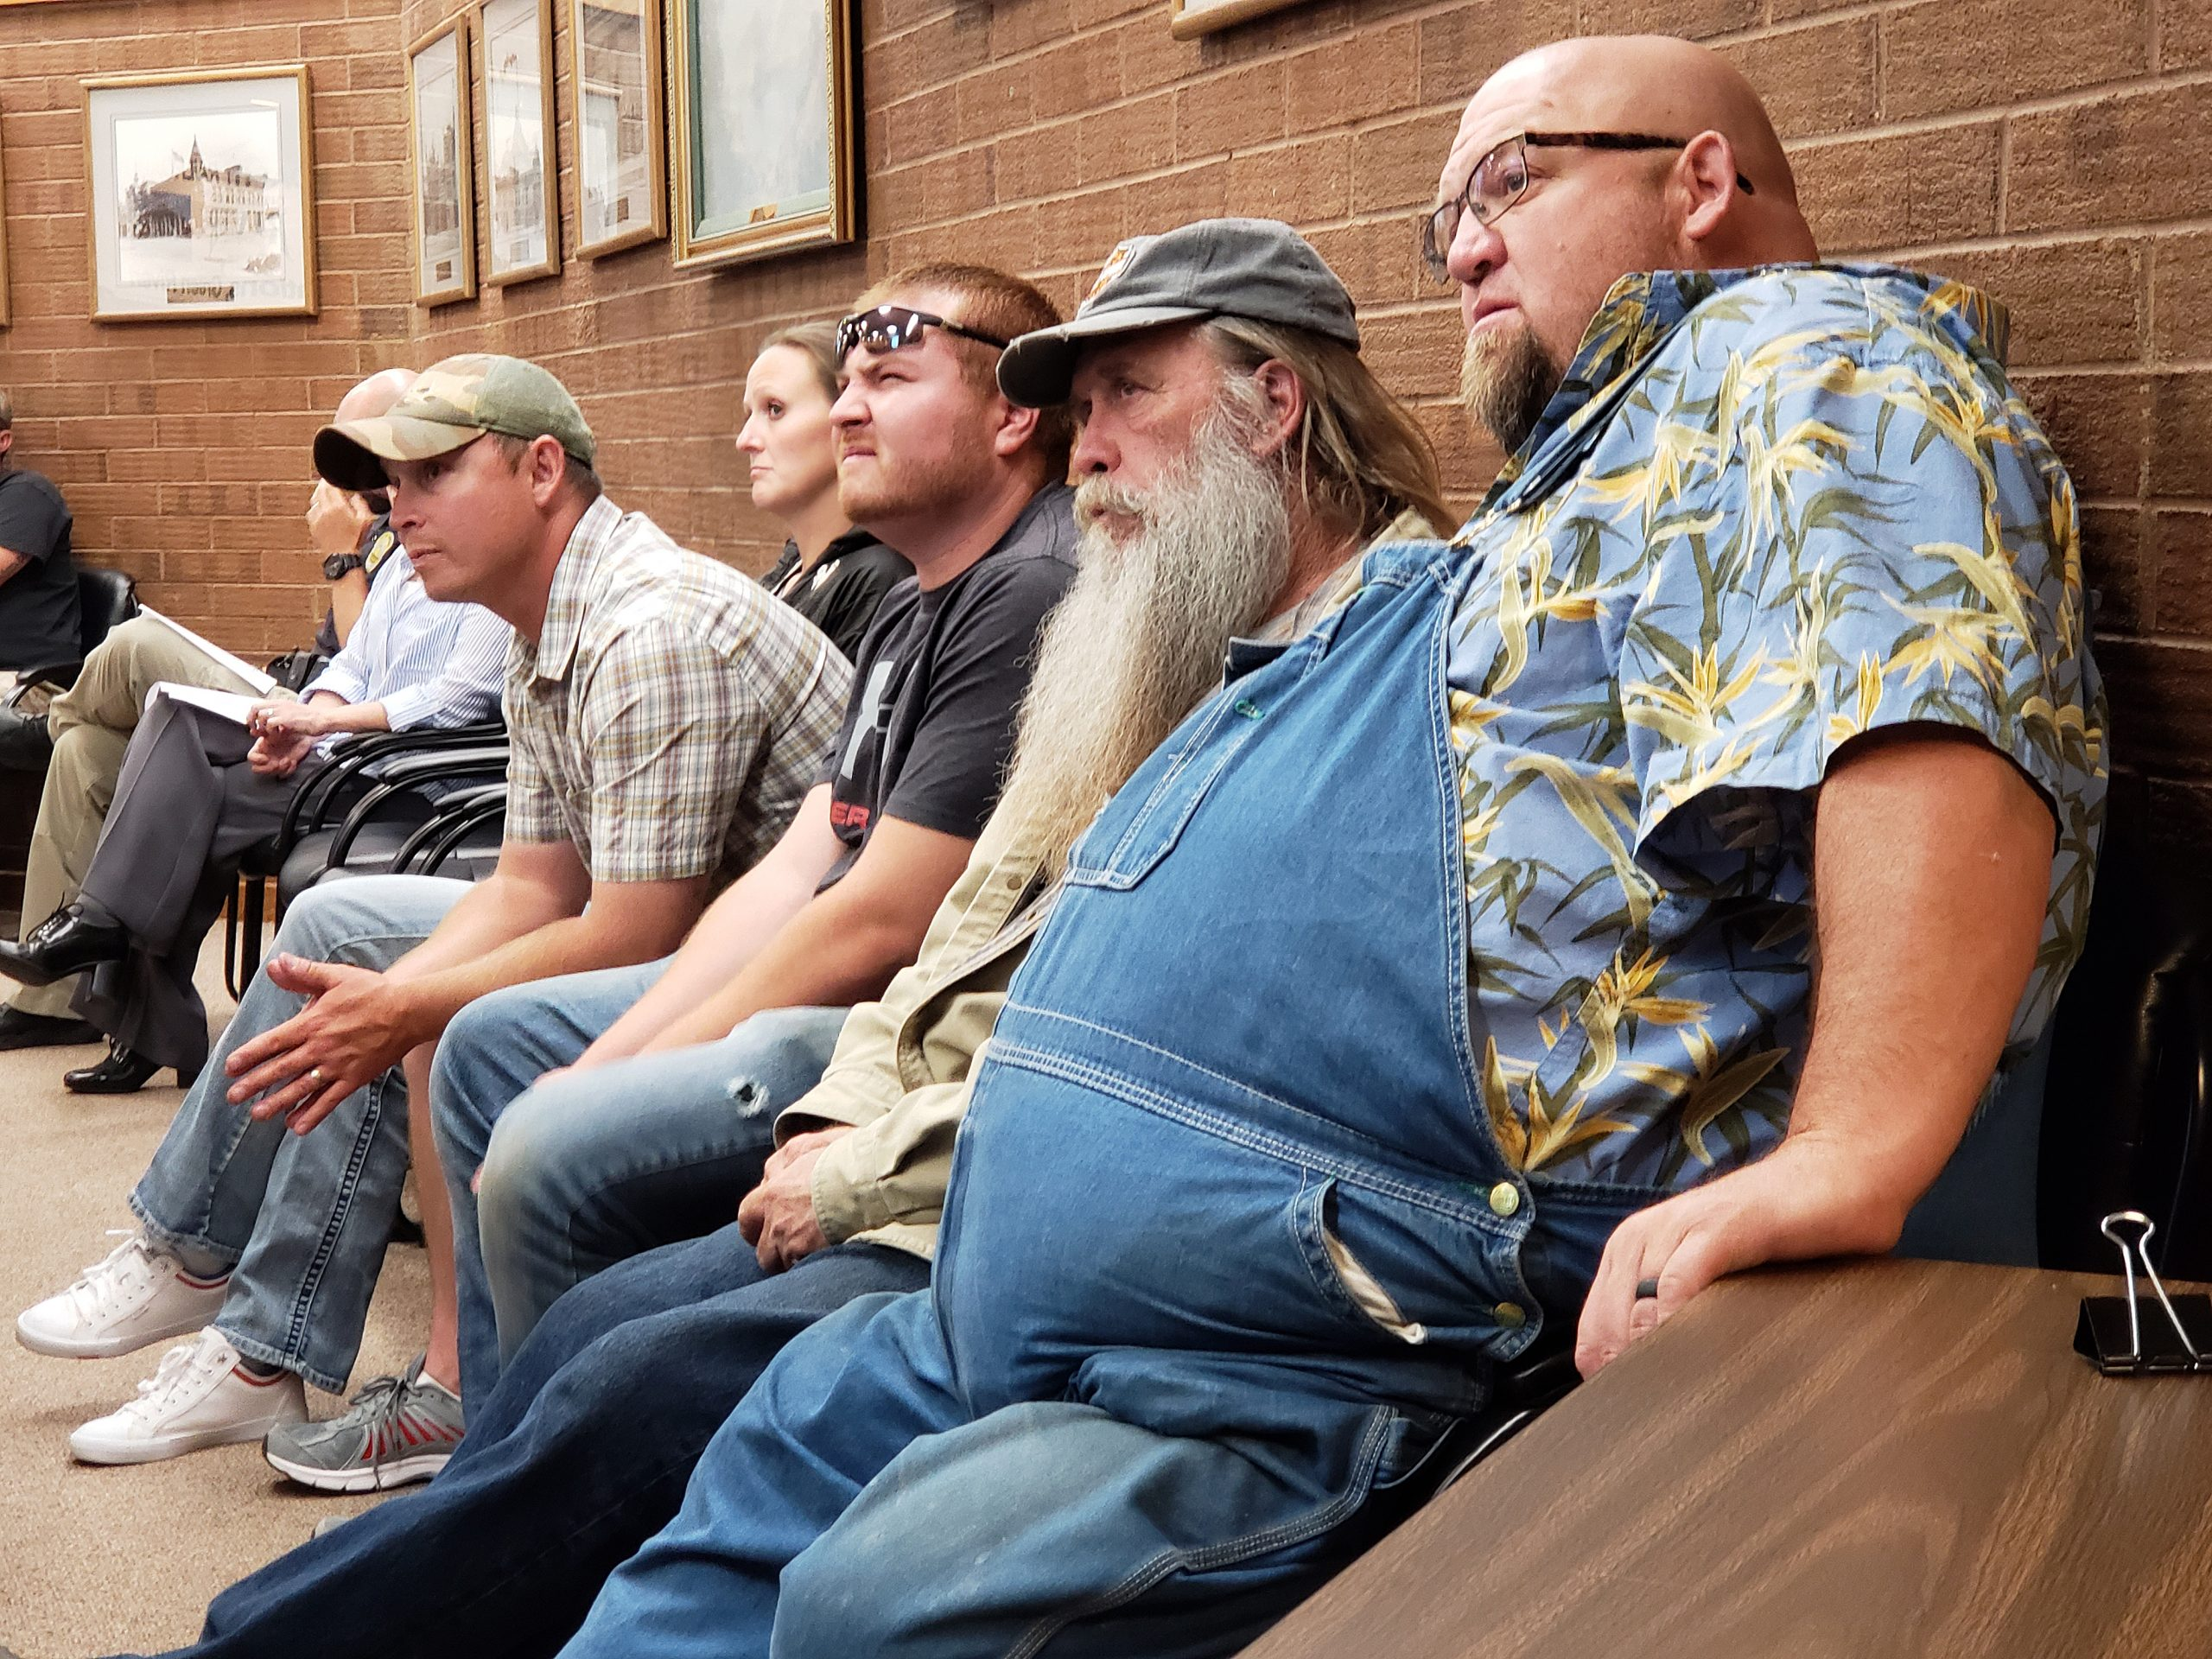 City Employees Attend Meeting In Anticipation of New Policy & Raises